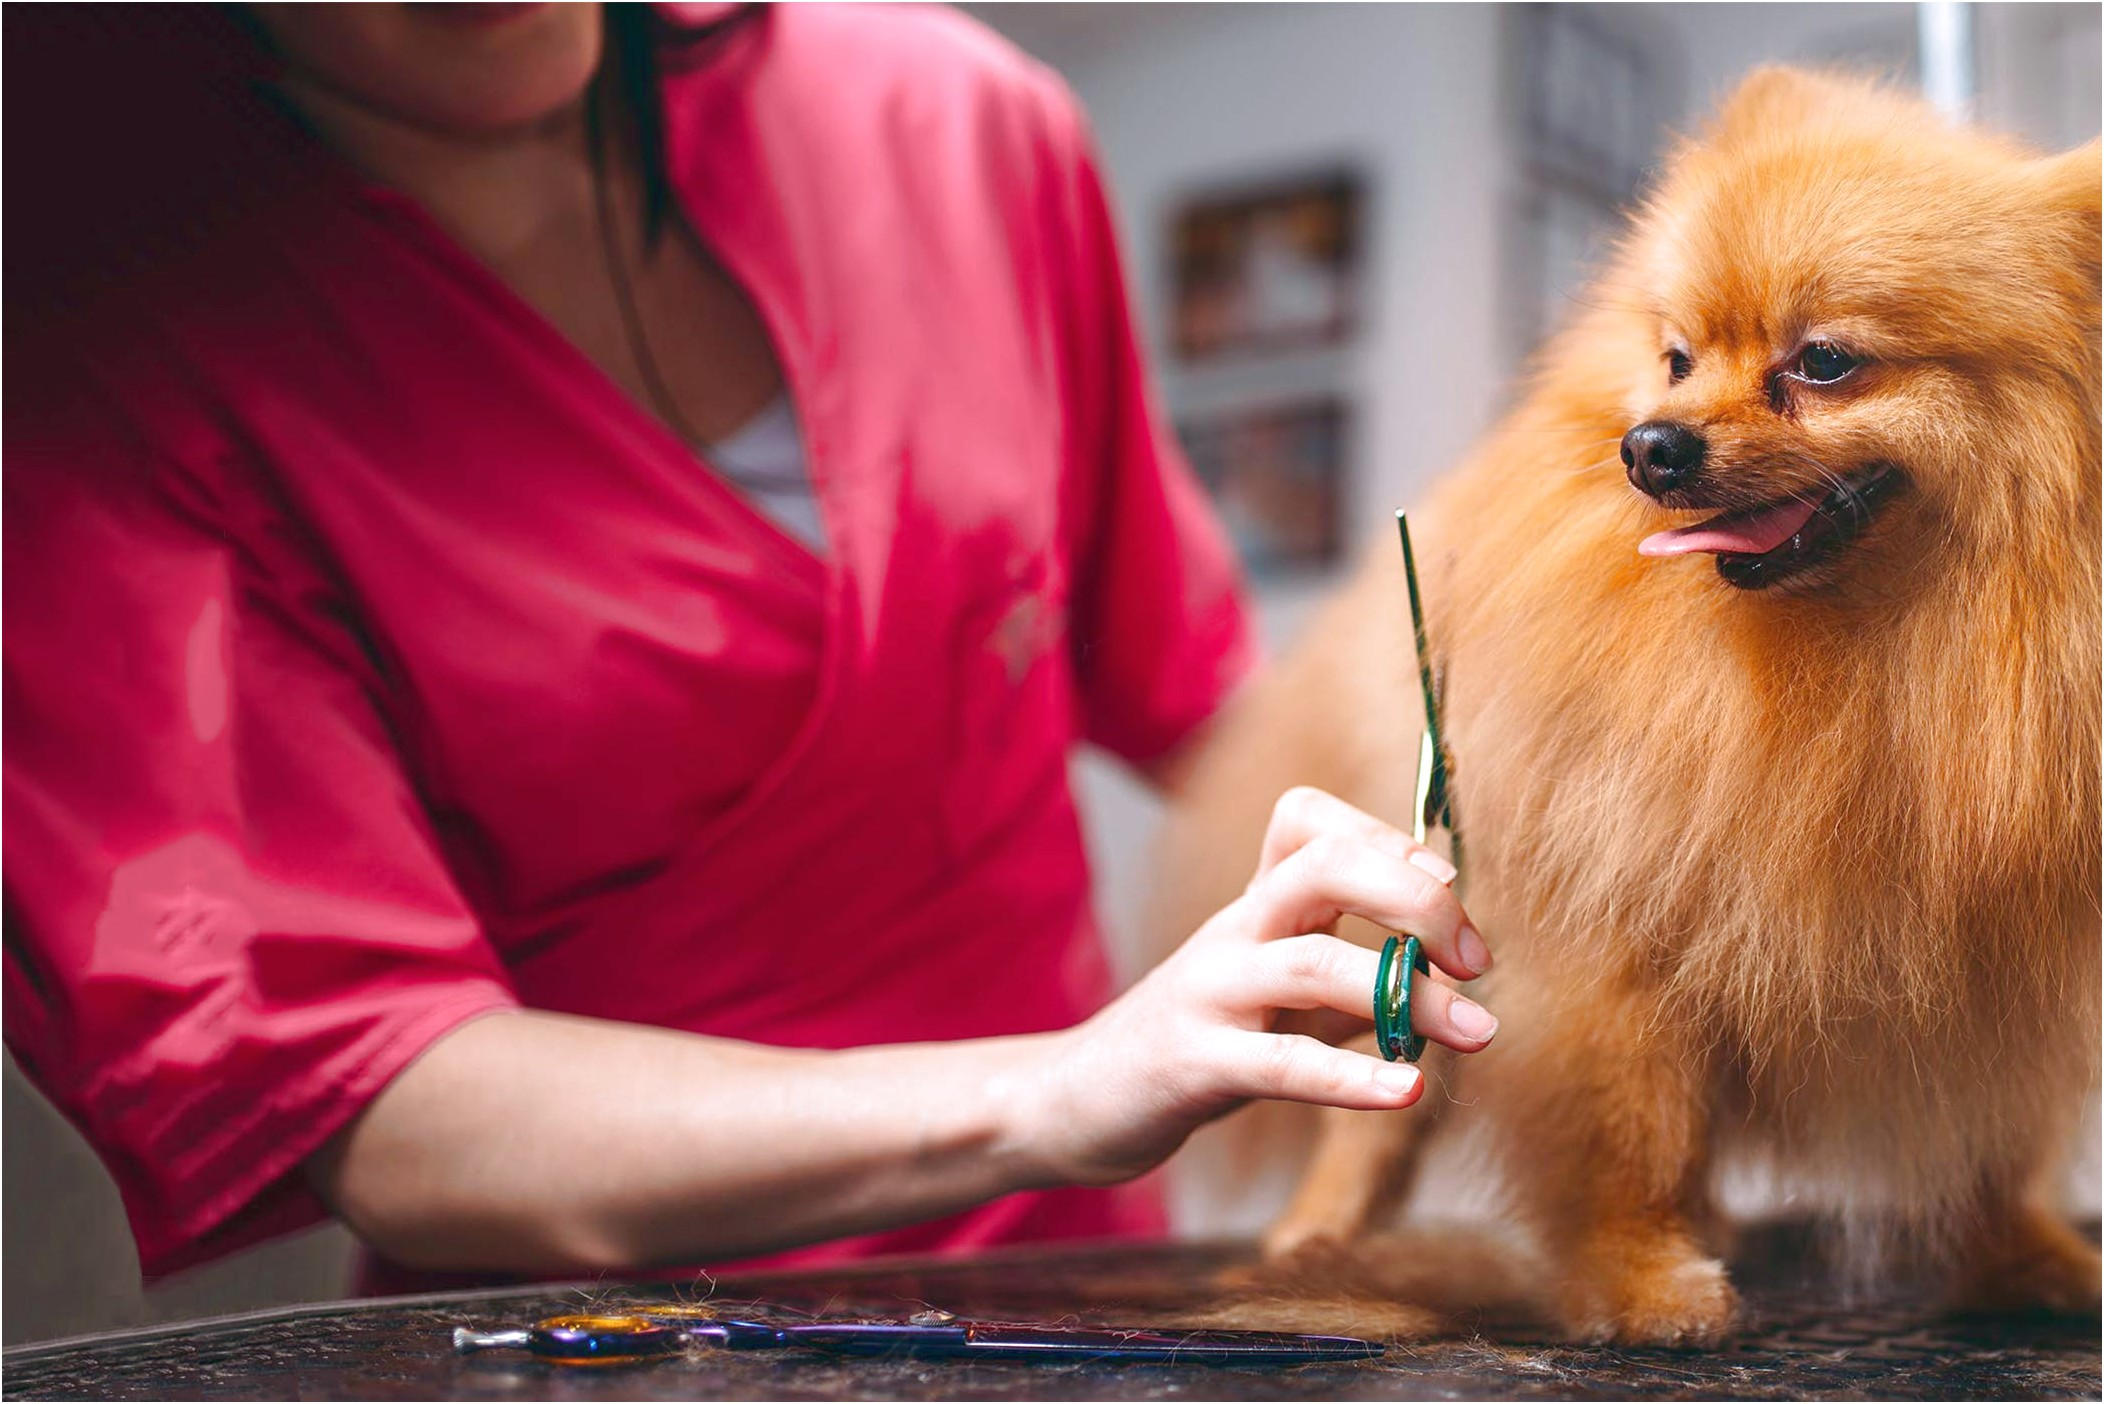 where do you learn to groom dogs